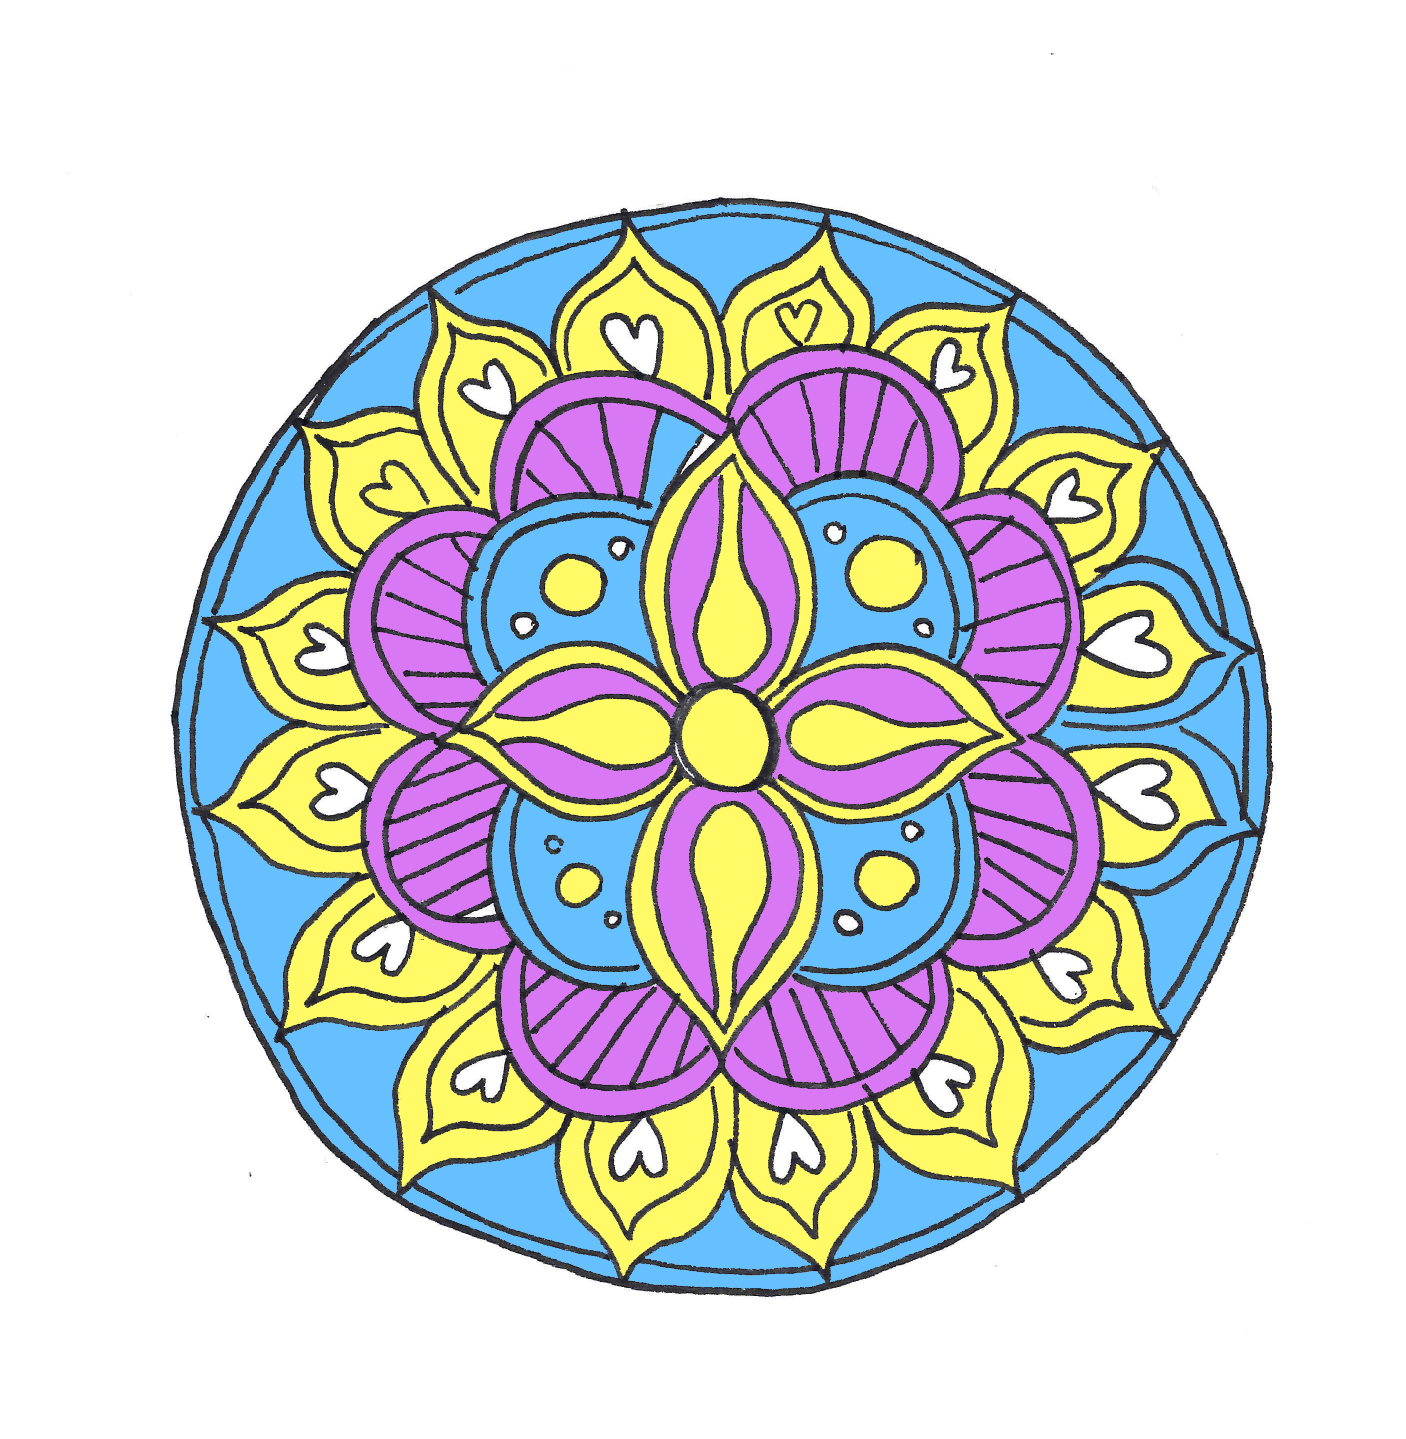 blue and white, purple and yellow, digitaly colorized image of a mandala, craft ideas, large circle with hearts and a flower shape